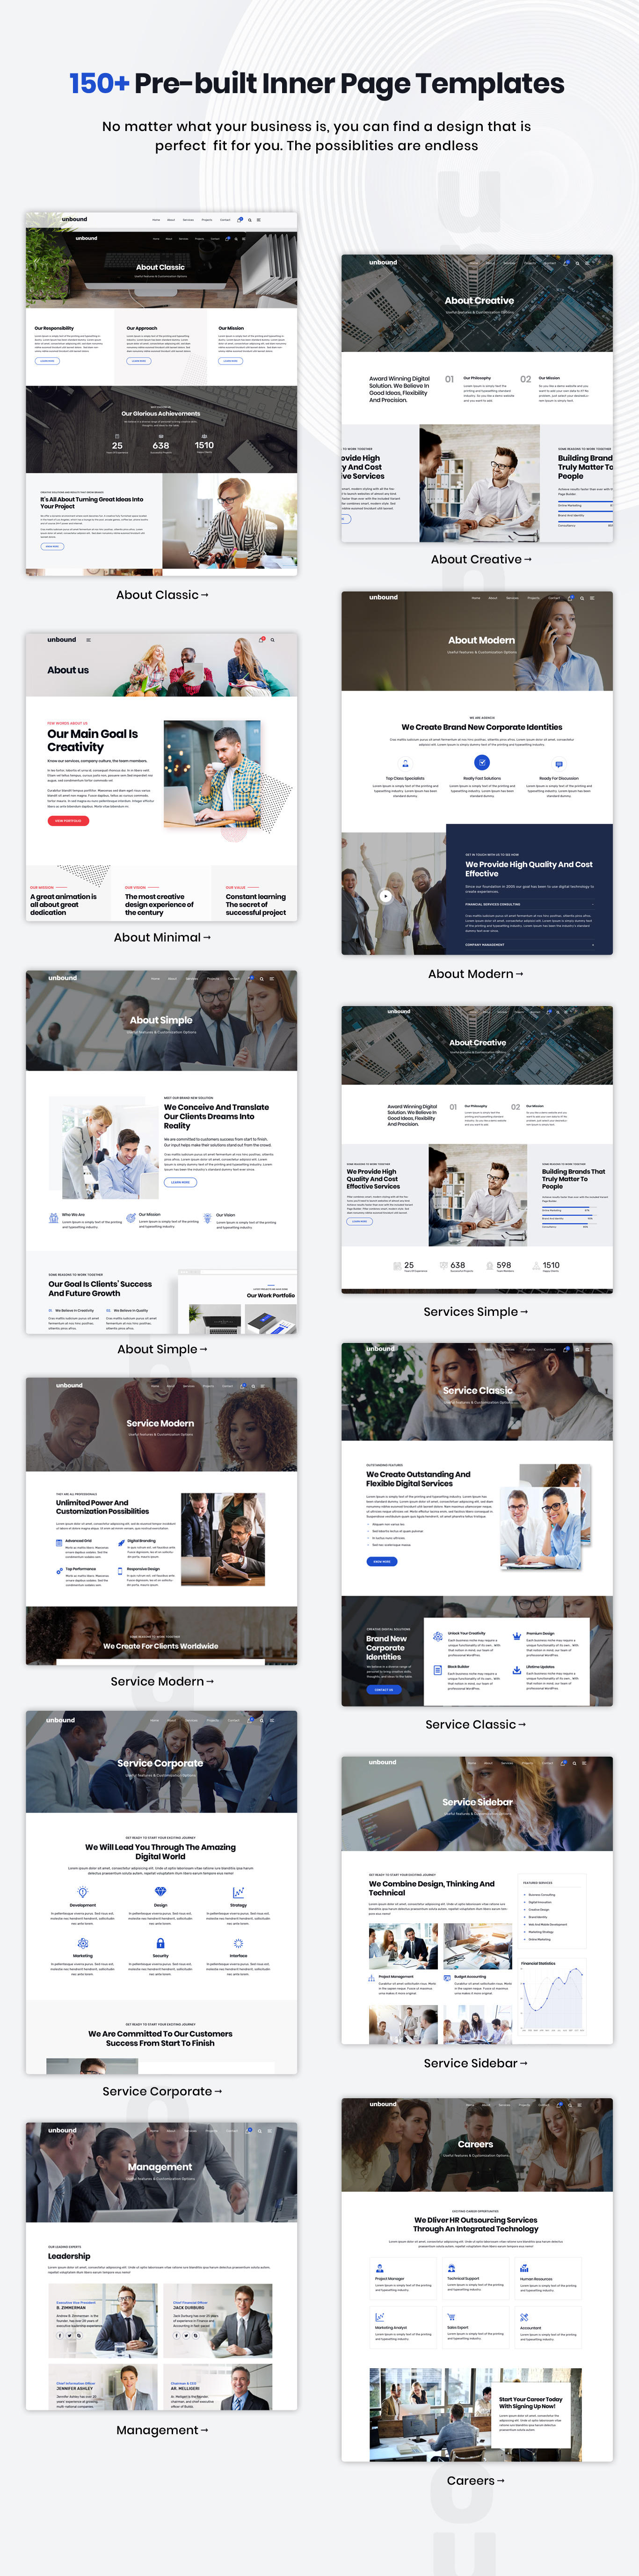 150+ Inner page templates